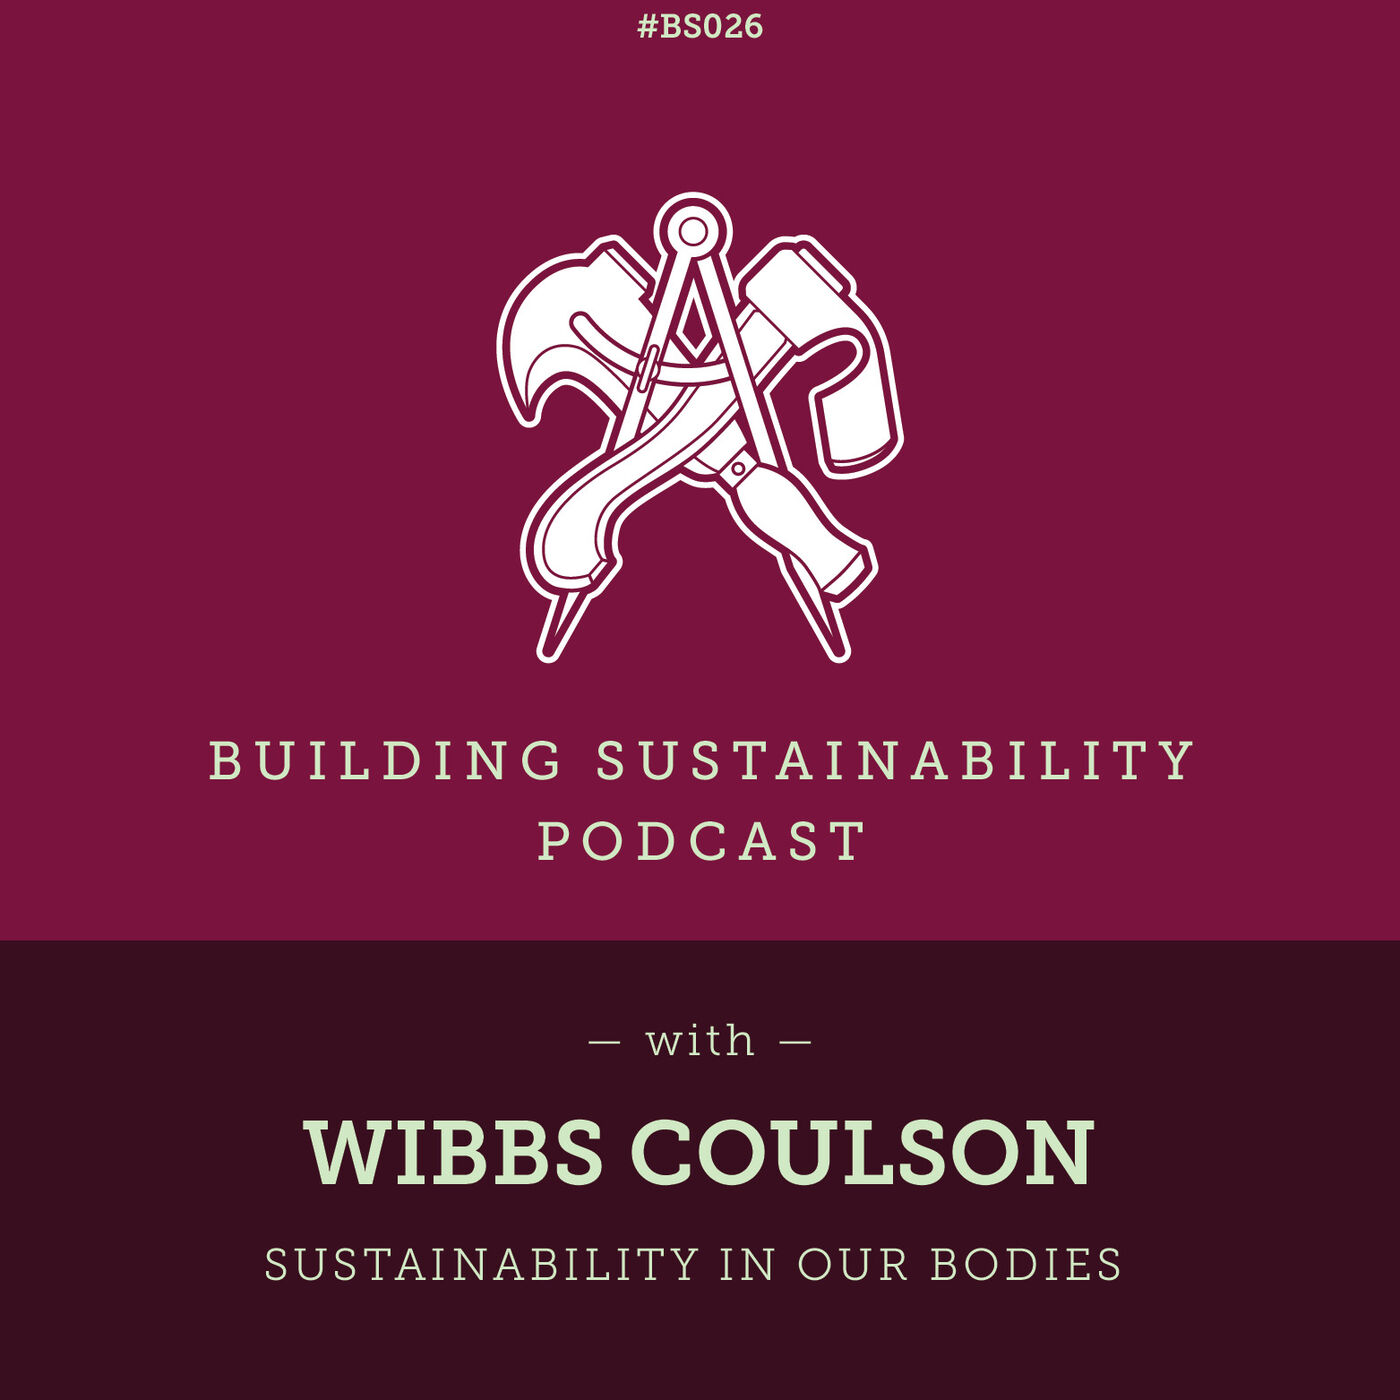 Sustainability in our bodies - Wibbs Coulson - BS026